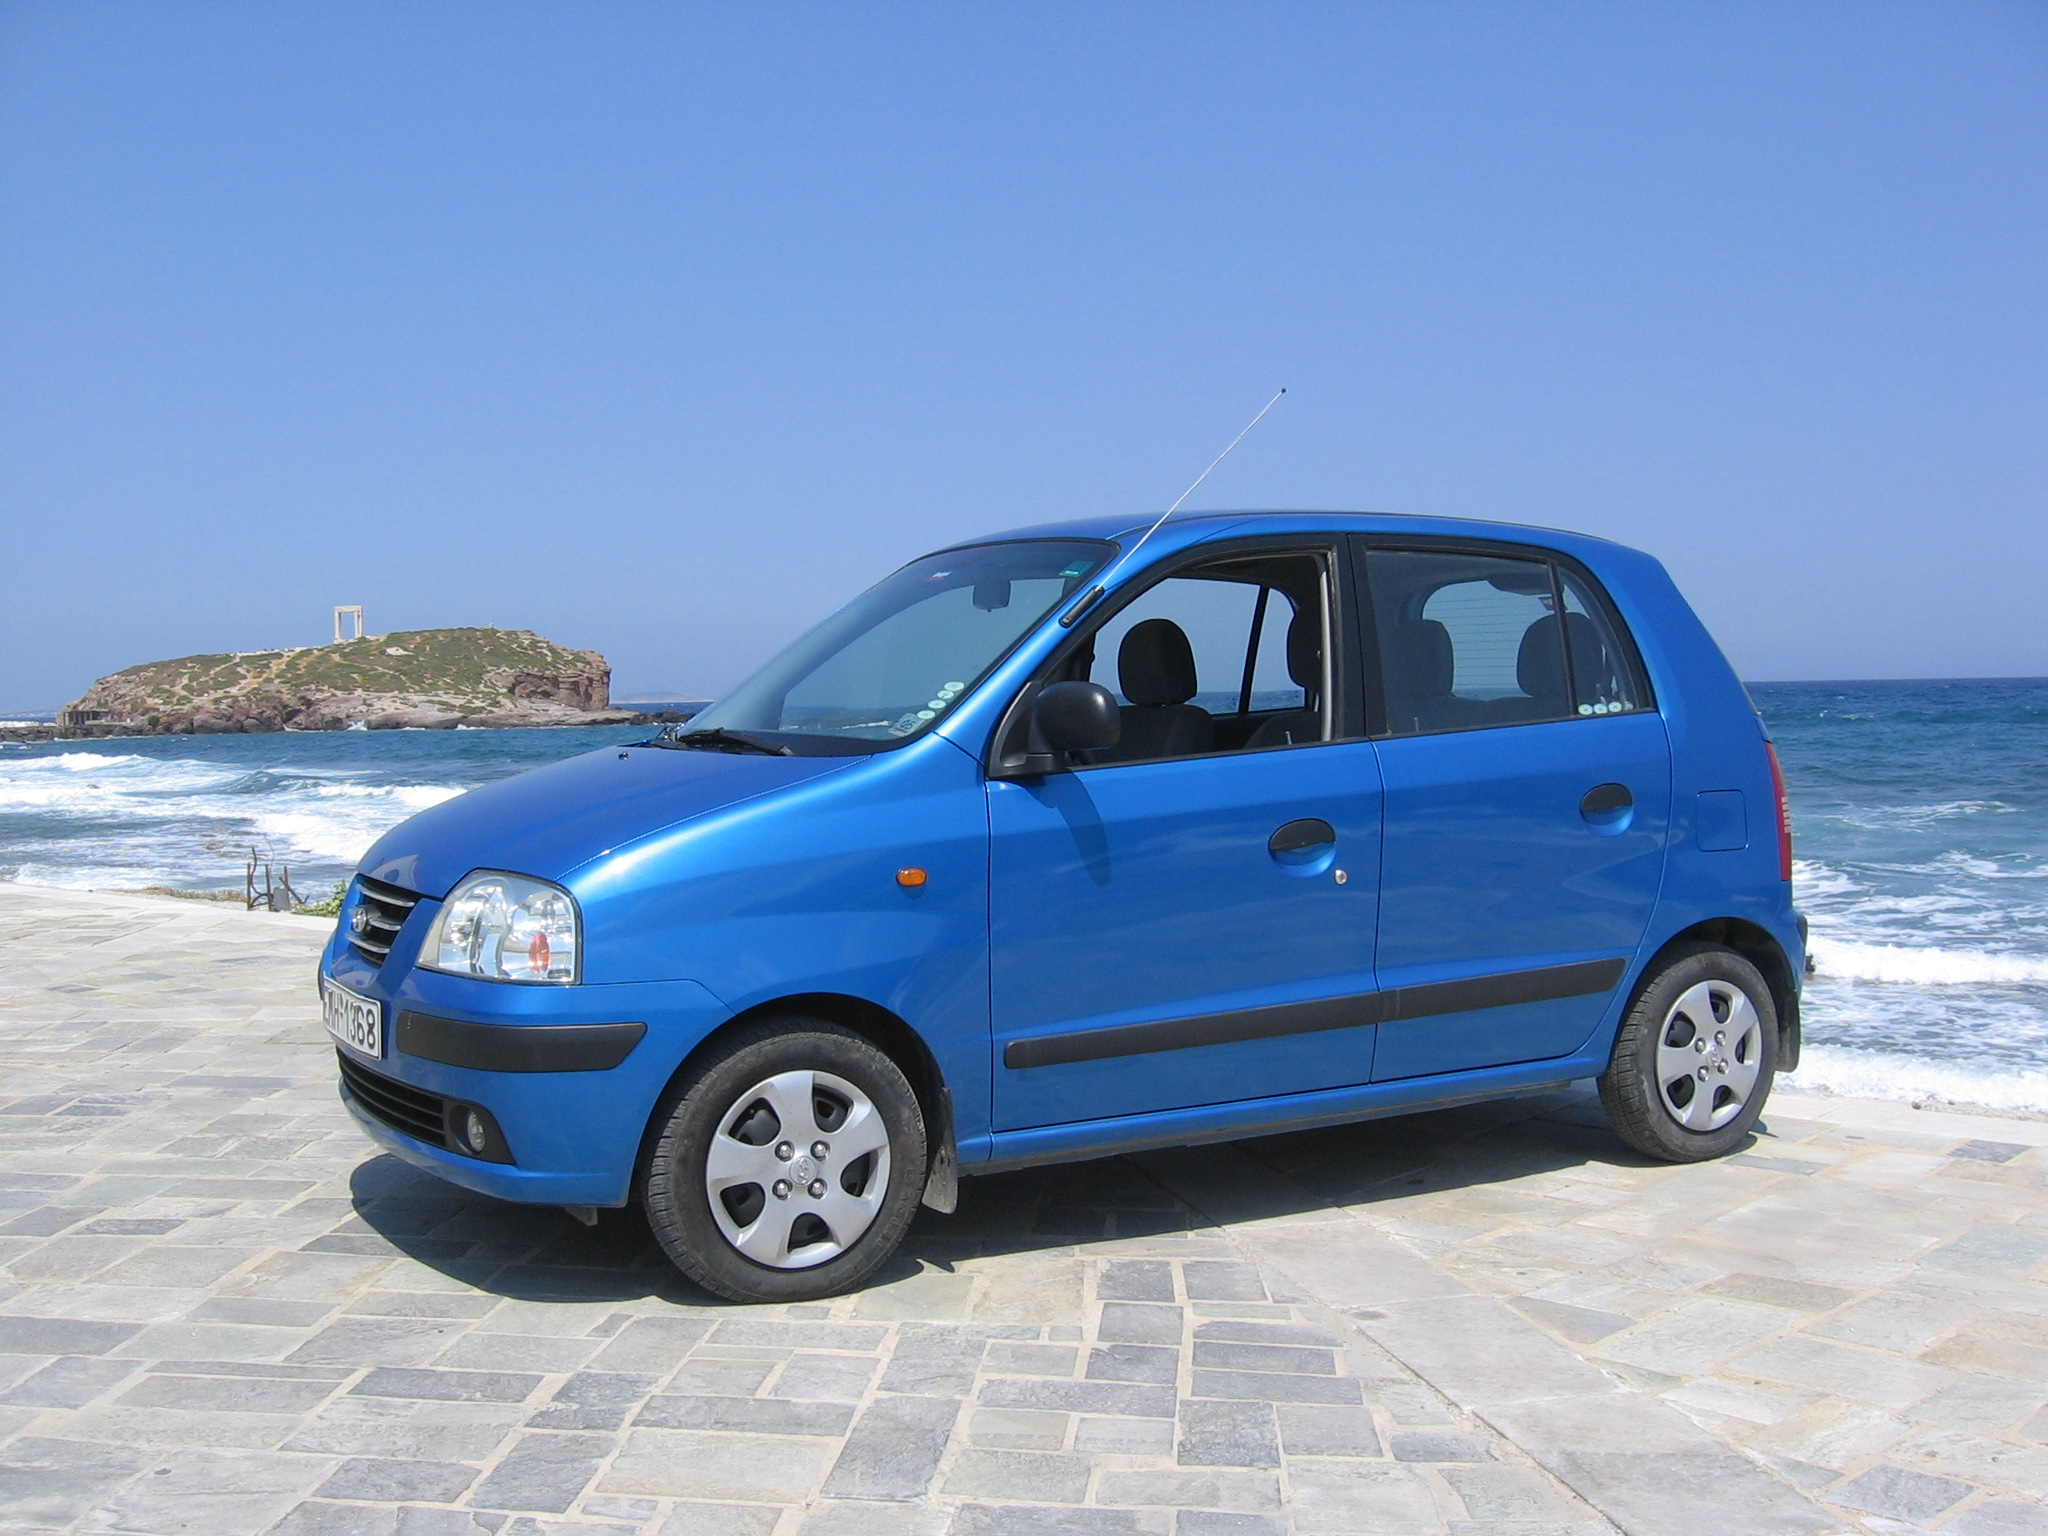 Hyundai Atos photo 10